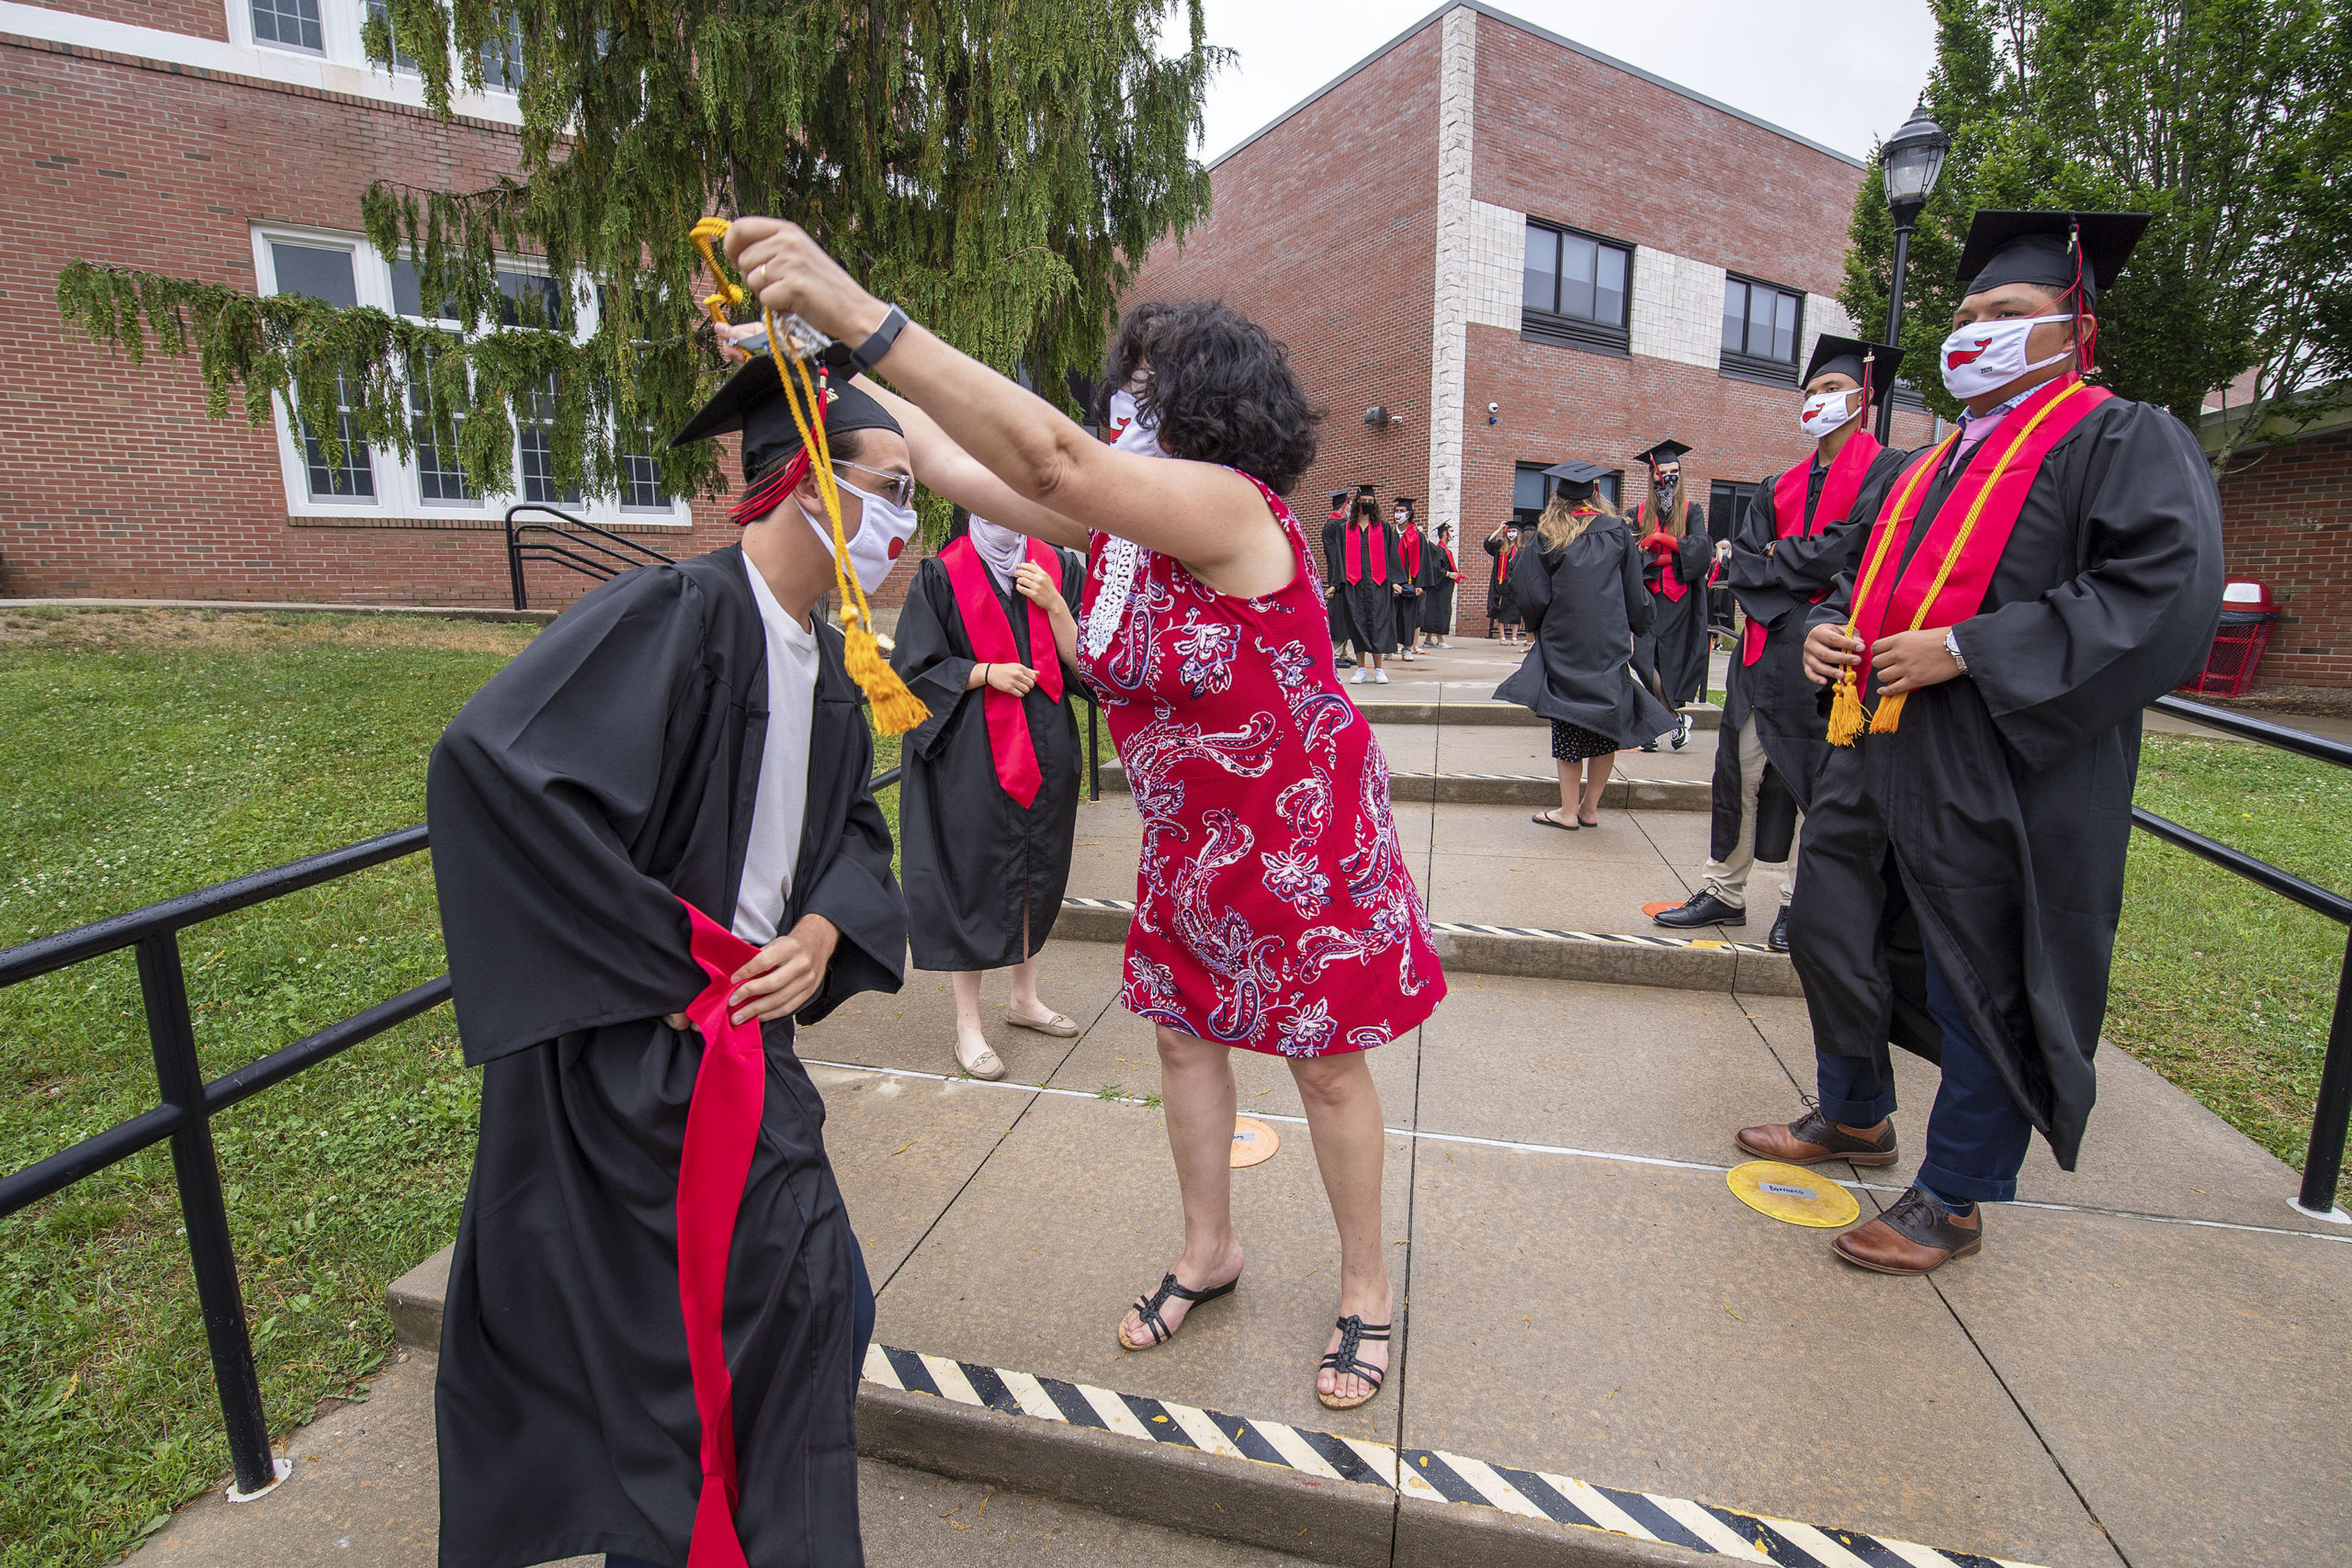 Yanni Bitis gets some help from Senior Class Advisor Terri Federico prior to the start of the Pierson High School 2020 Commencement Ceremony at Pierson High School on Saturday.